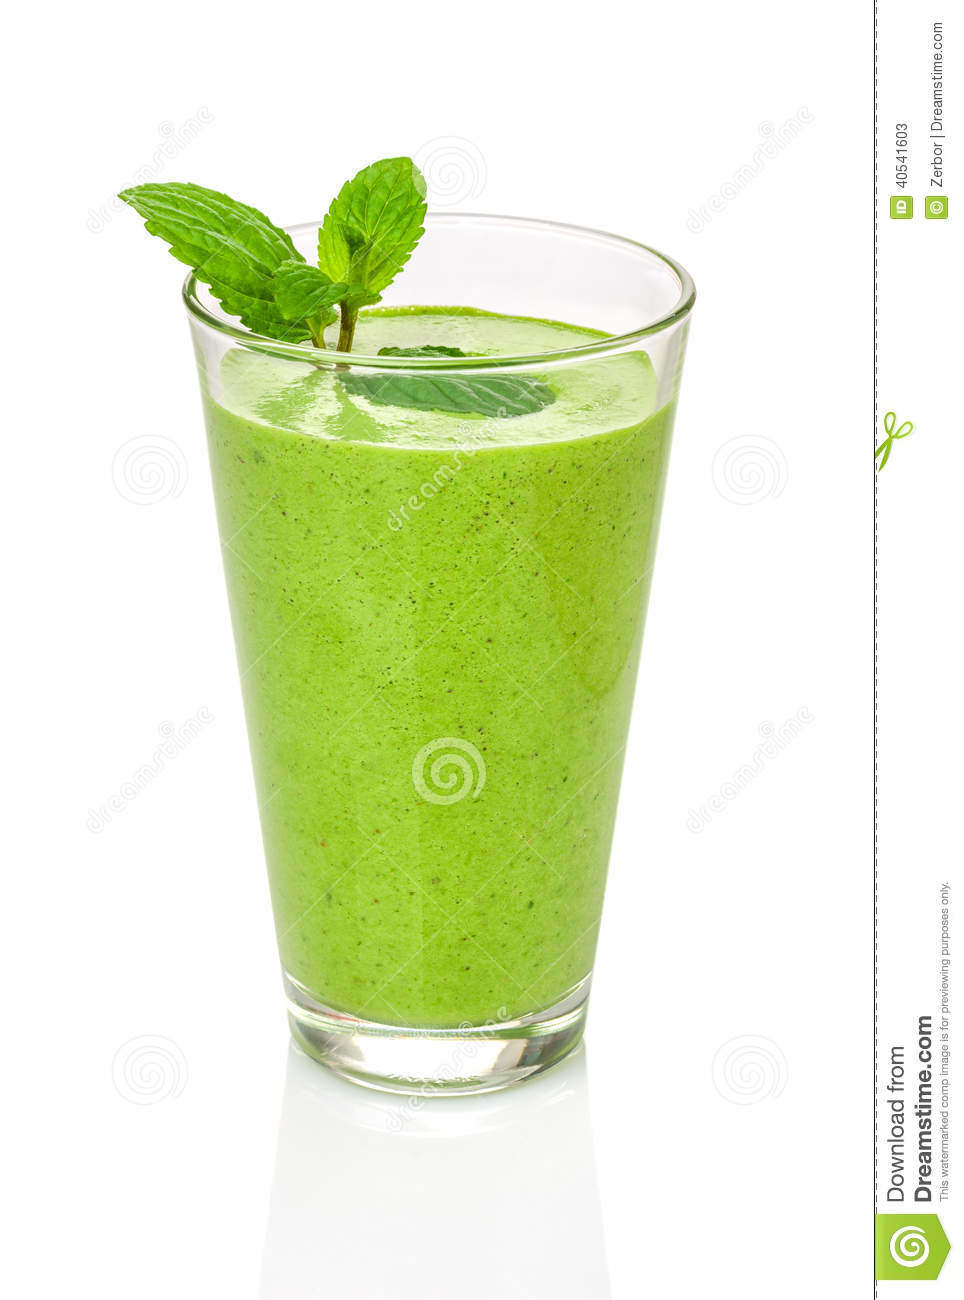 green smoothie with mint stock image image of nutrition 40541603. Black Bedroom Furniture Sets. Home Design Ideas